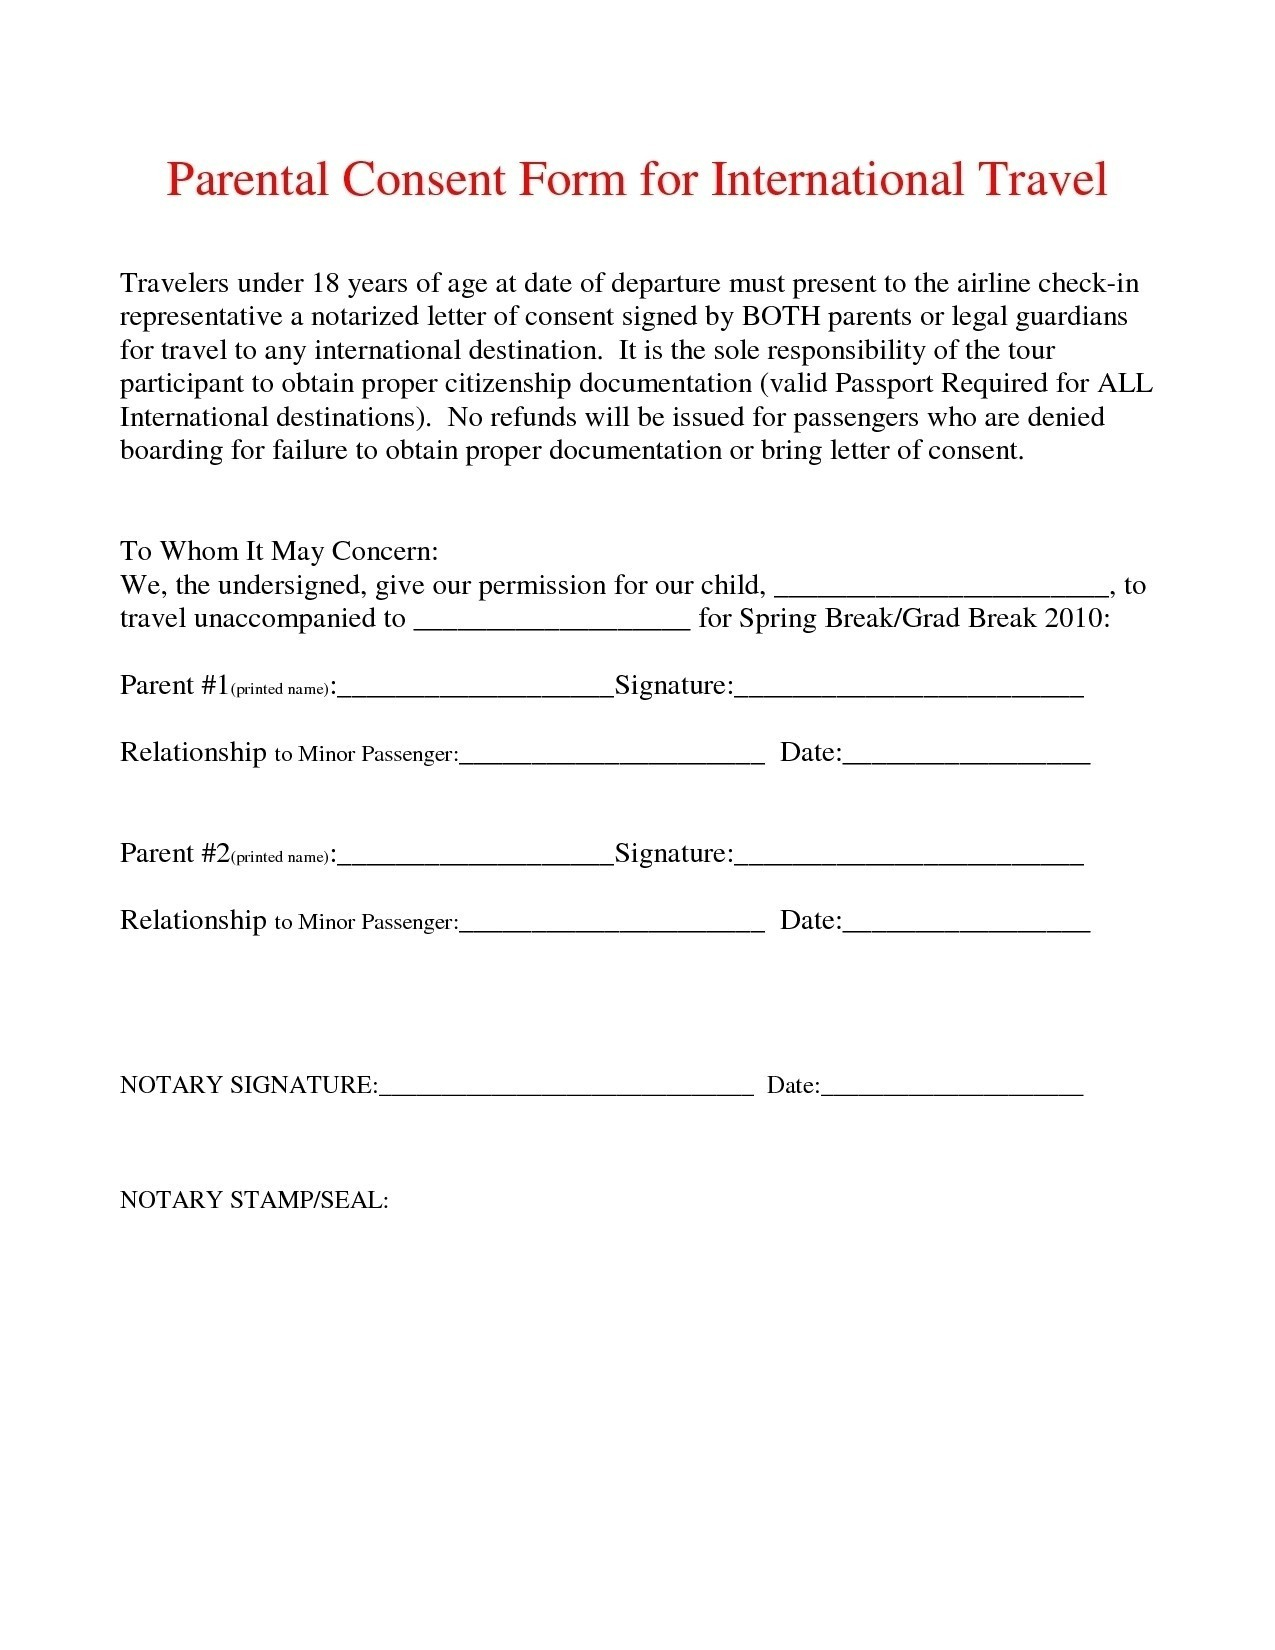 Letter Of Consent for Child to Travel Template - Sample Permission Letter to Travel Best Notarized Letter